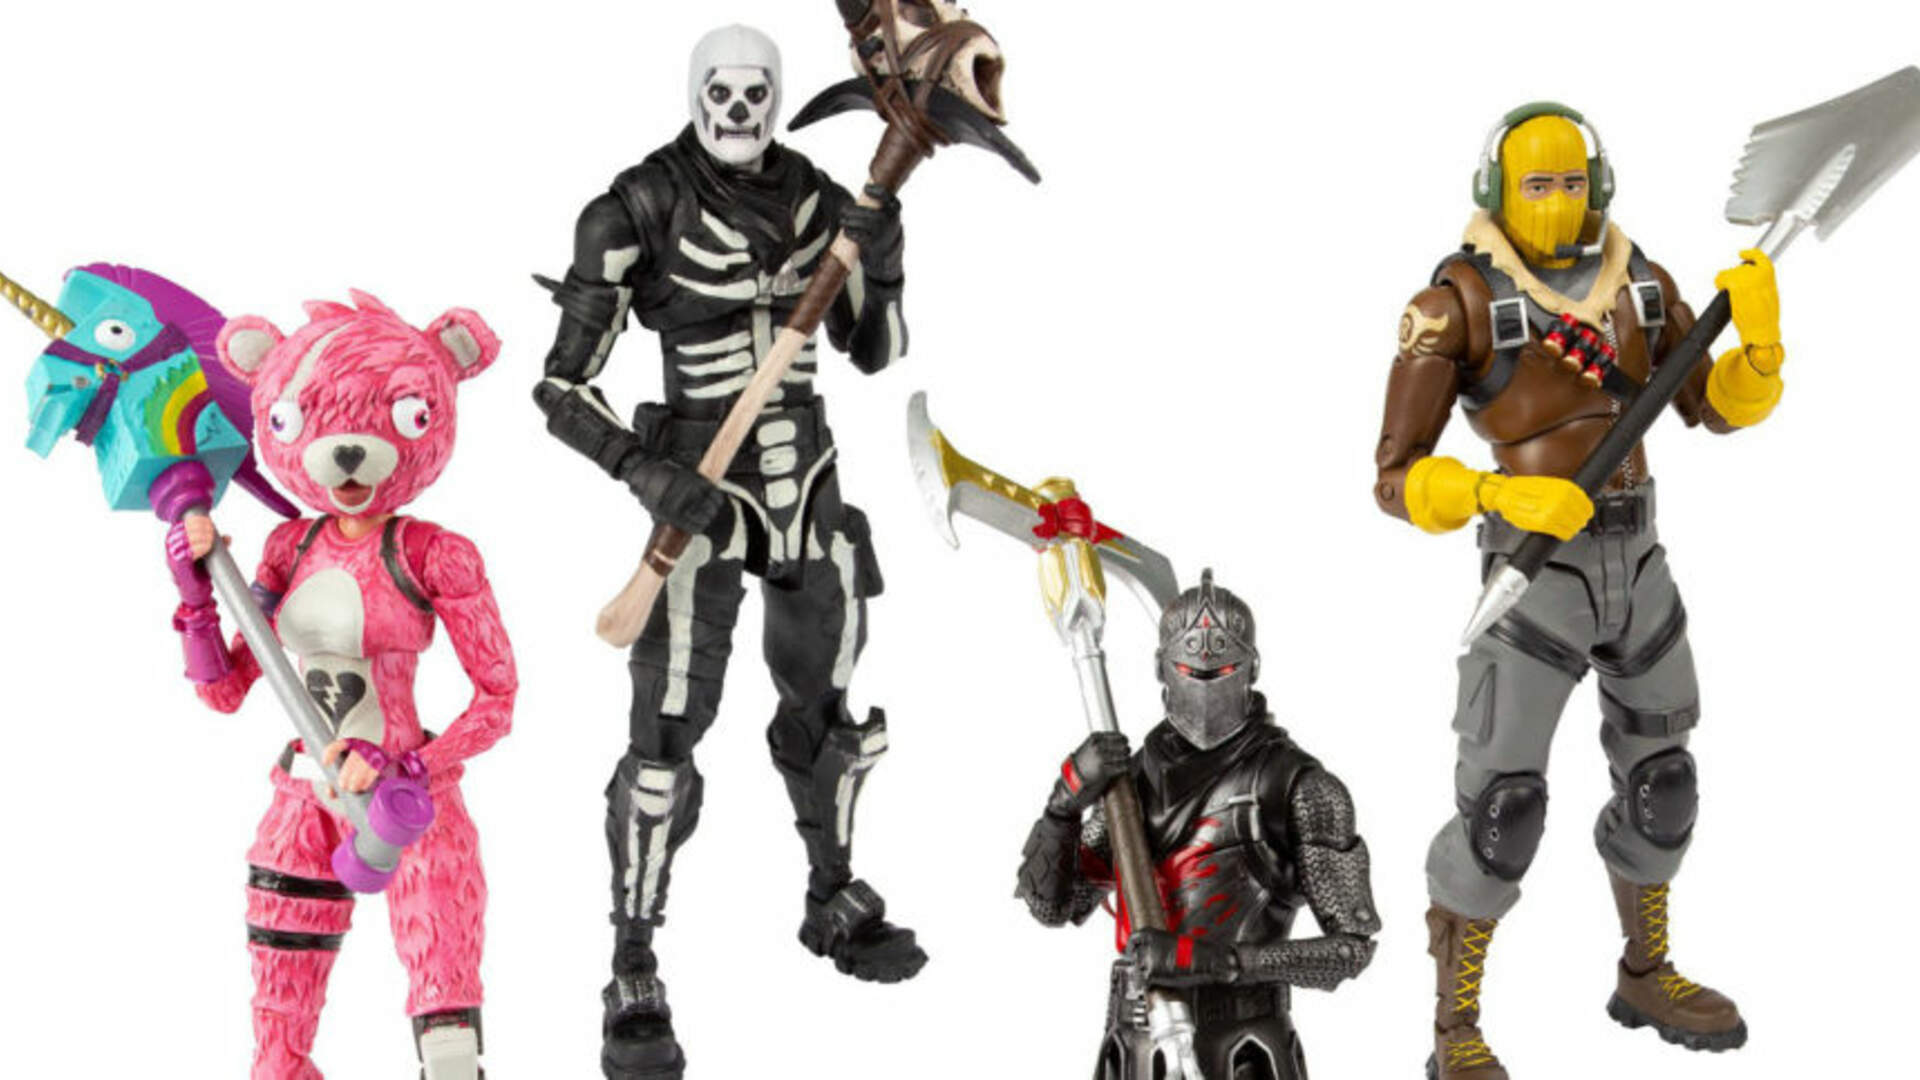 Fortnite Action Figures and Nerf Gun Jump to Top of Kids' Holiday Wishlist